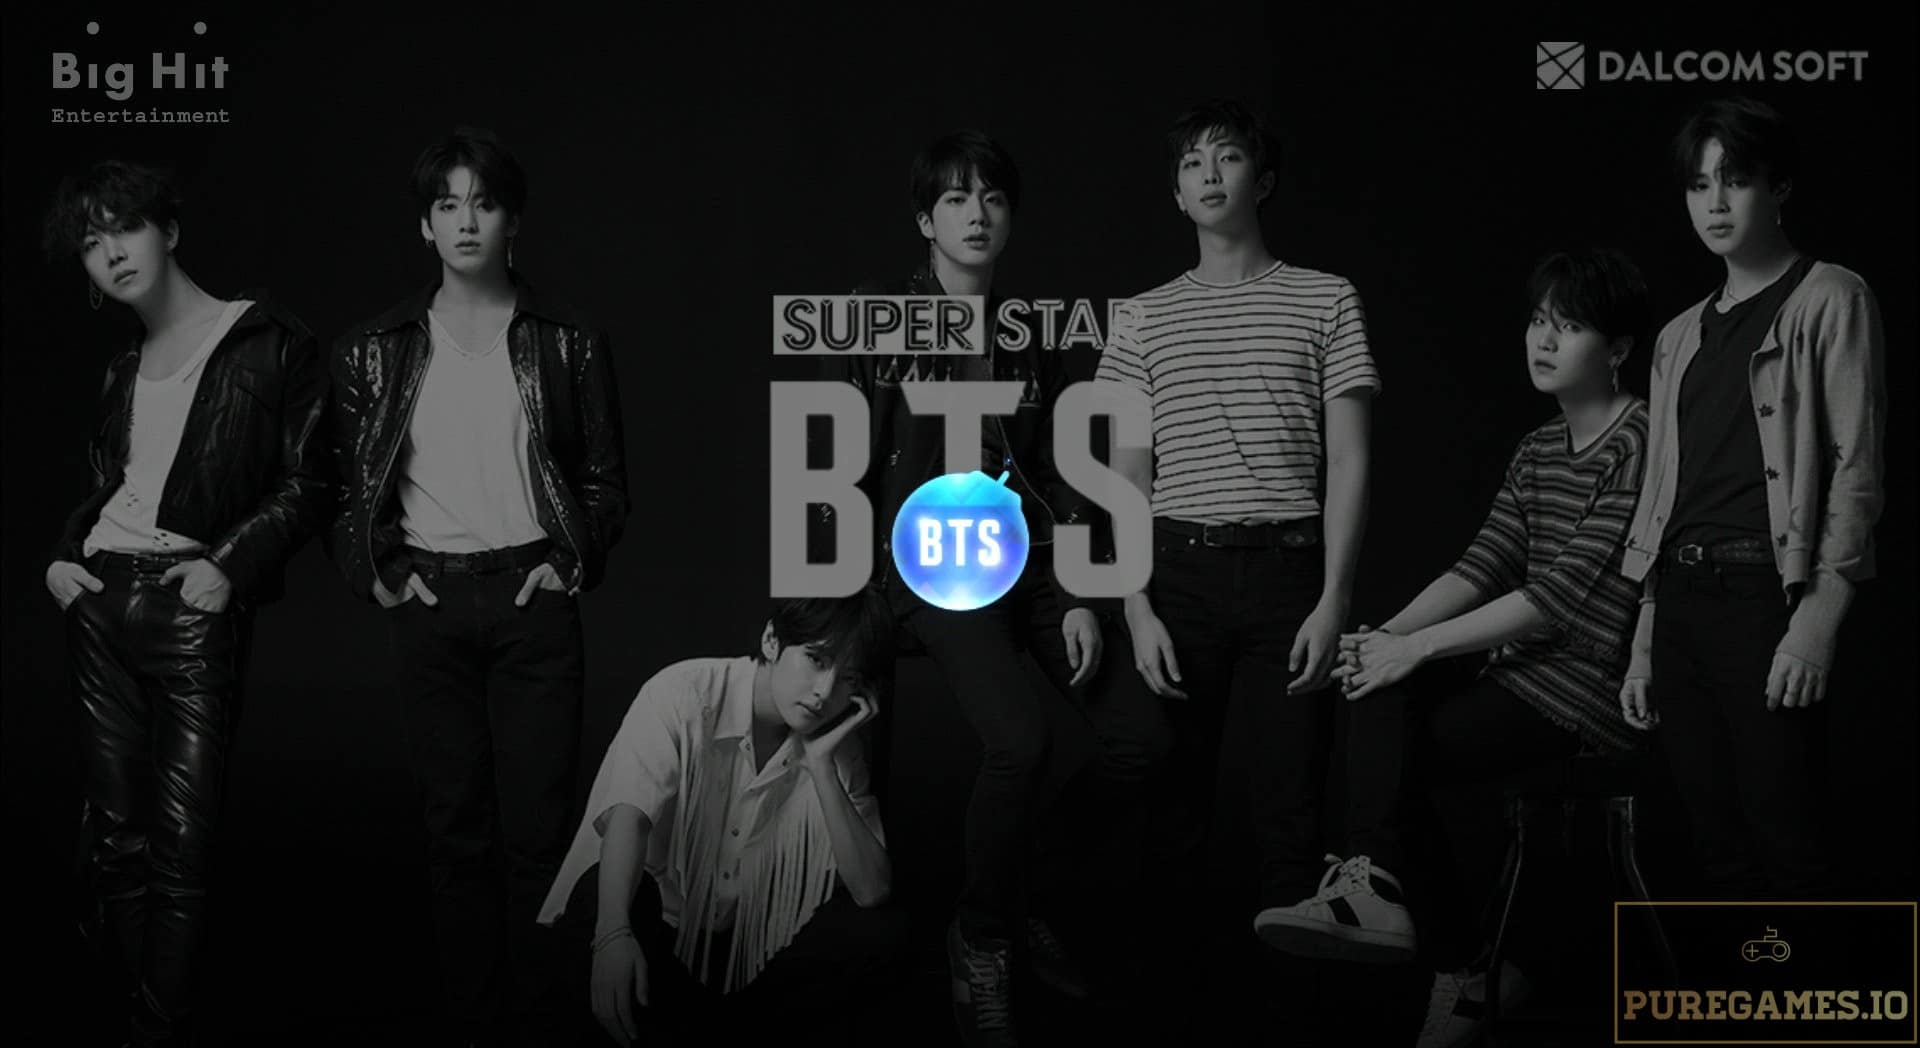 Download SuperStar BTS MOD APK - For Android/iOS 3